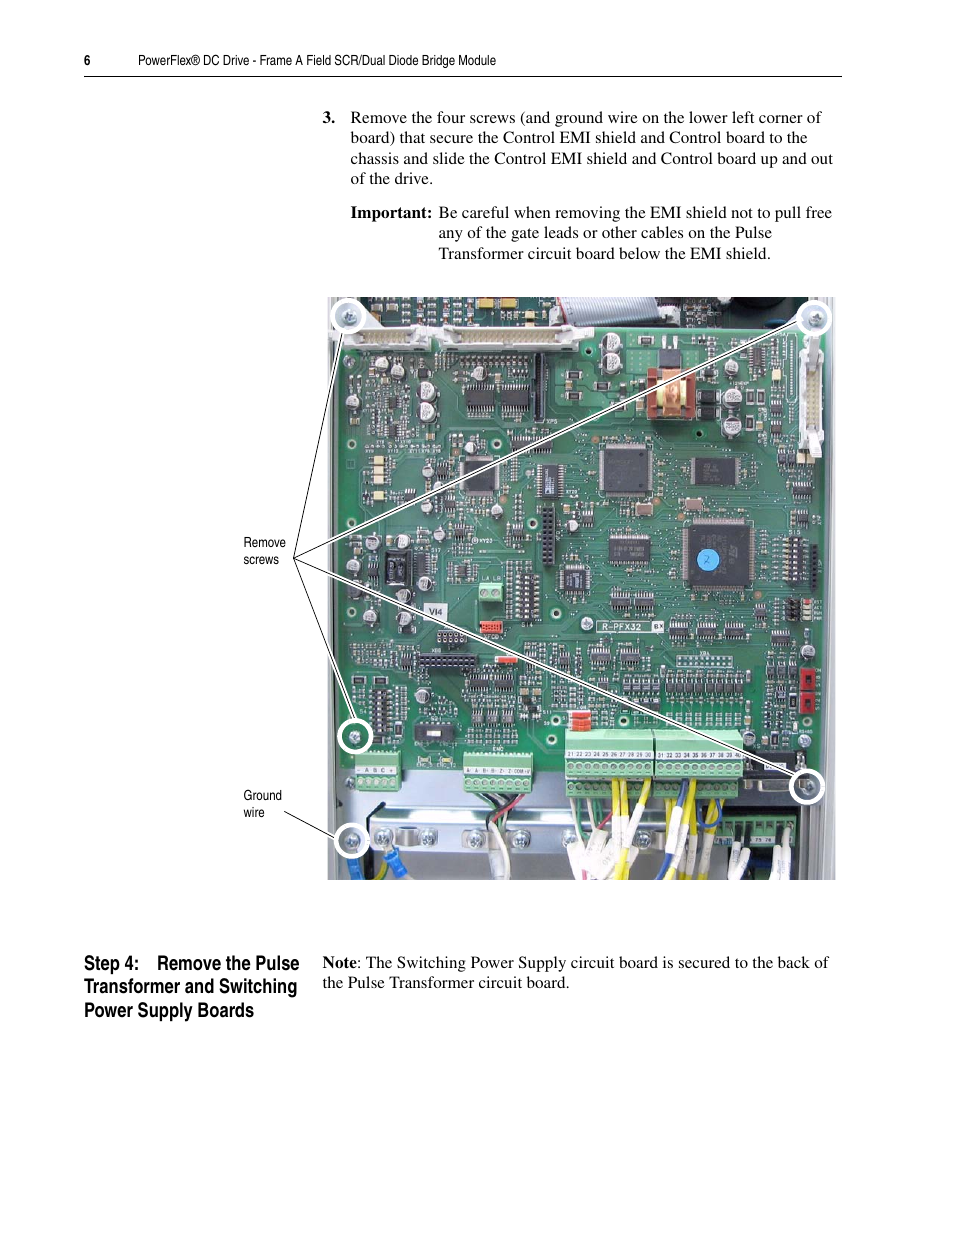 Rockwell Automation 20p Powerflex Dc Drive Frame A Field Scr Dual 40 Ethernet Wiring Diagram Diode Bridge Module User Manual Page 6 14